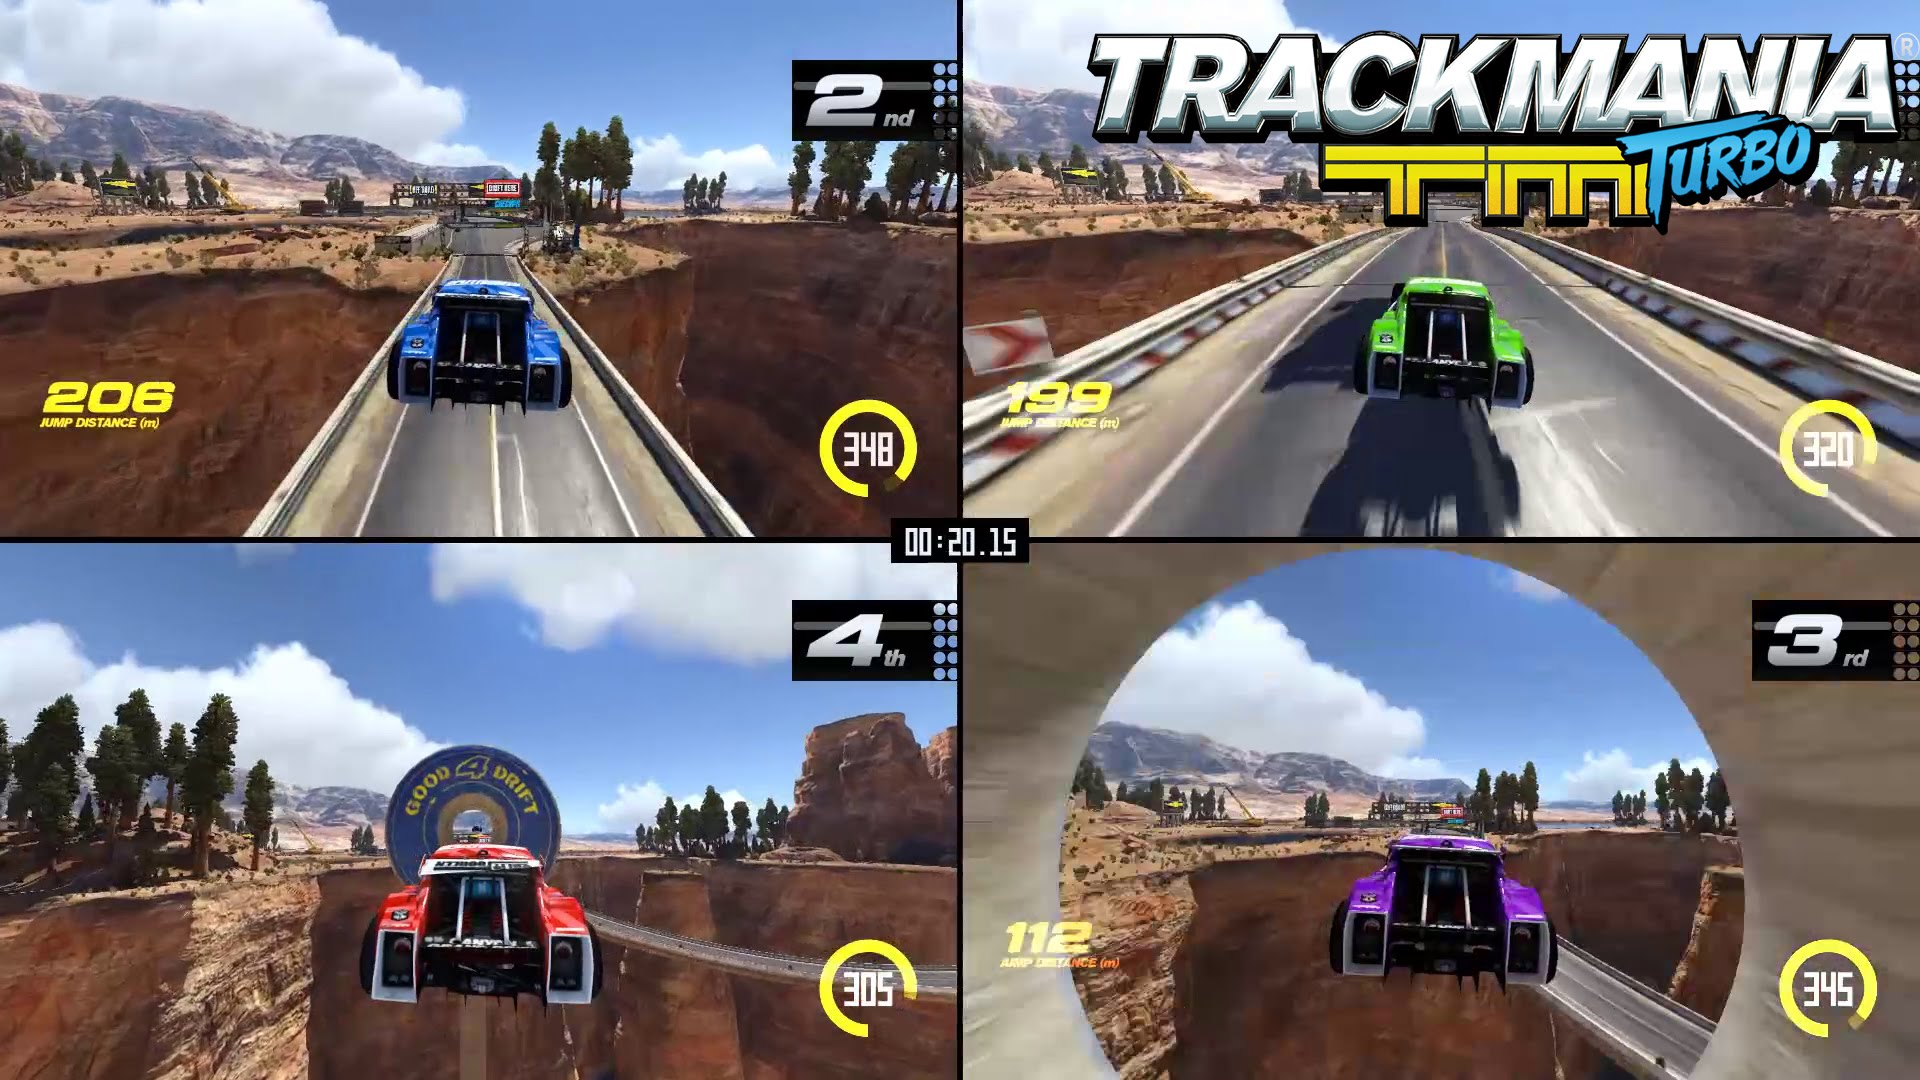 Trackmania Turbo Multiplayer trailer – More drivers, more fun!